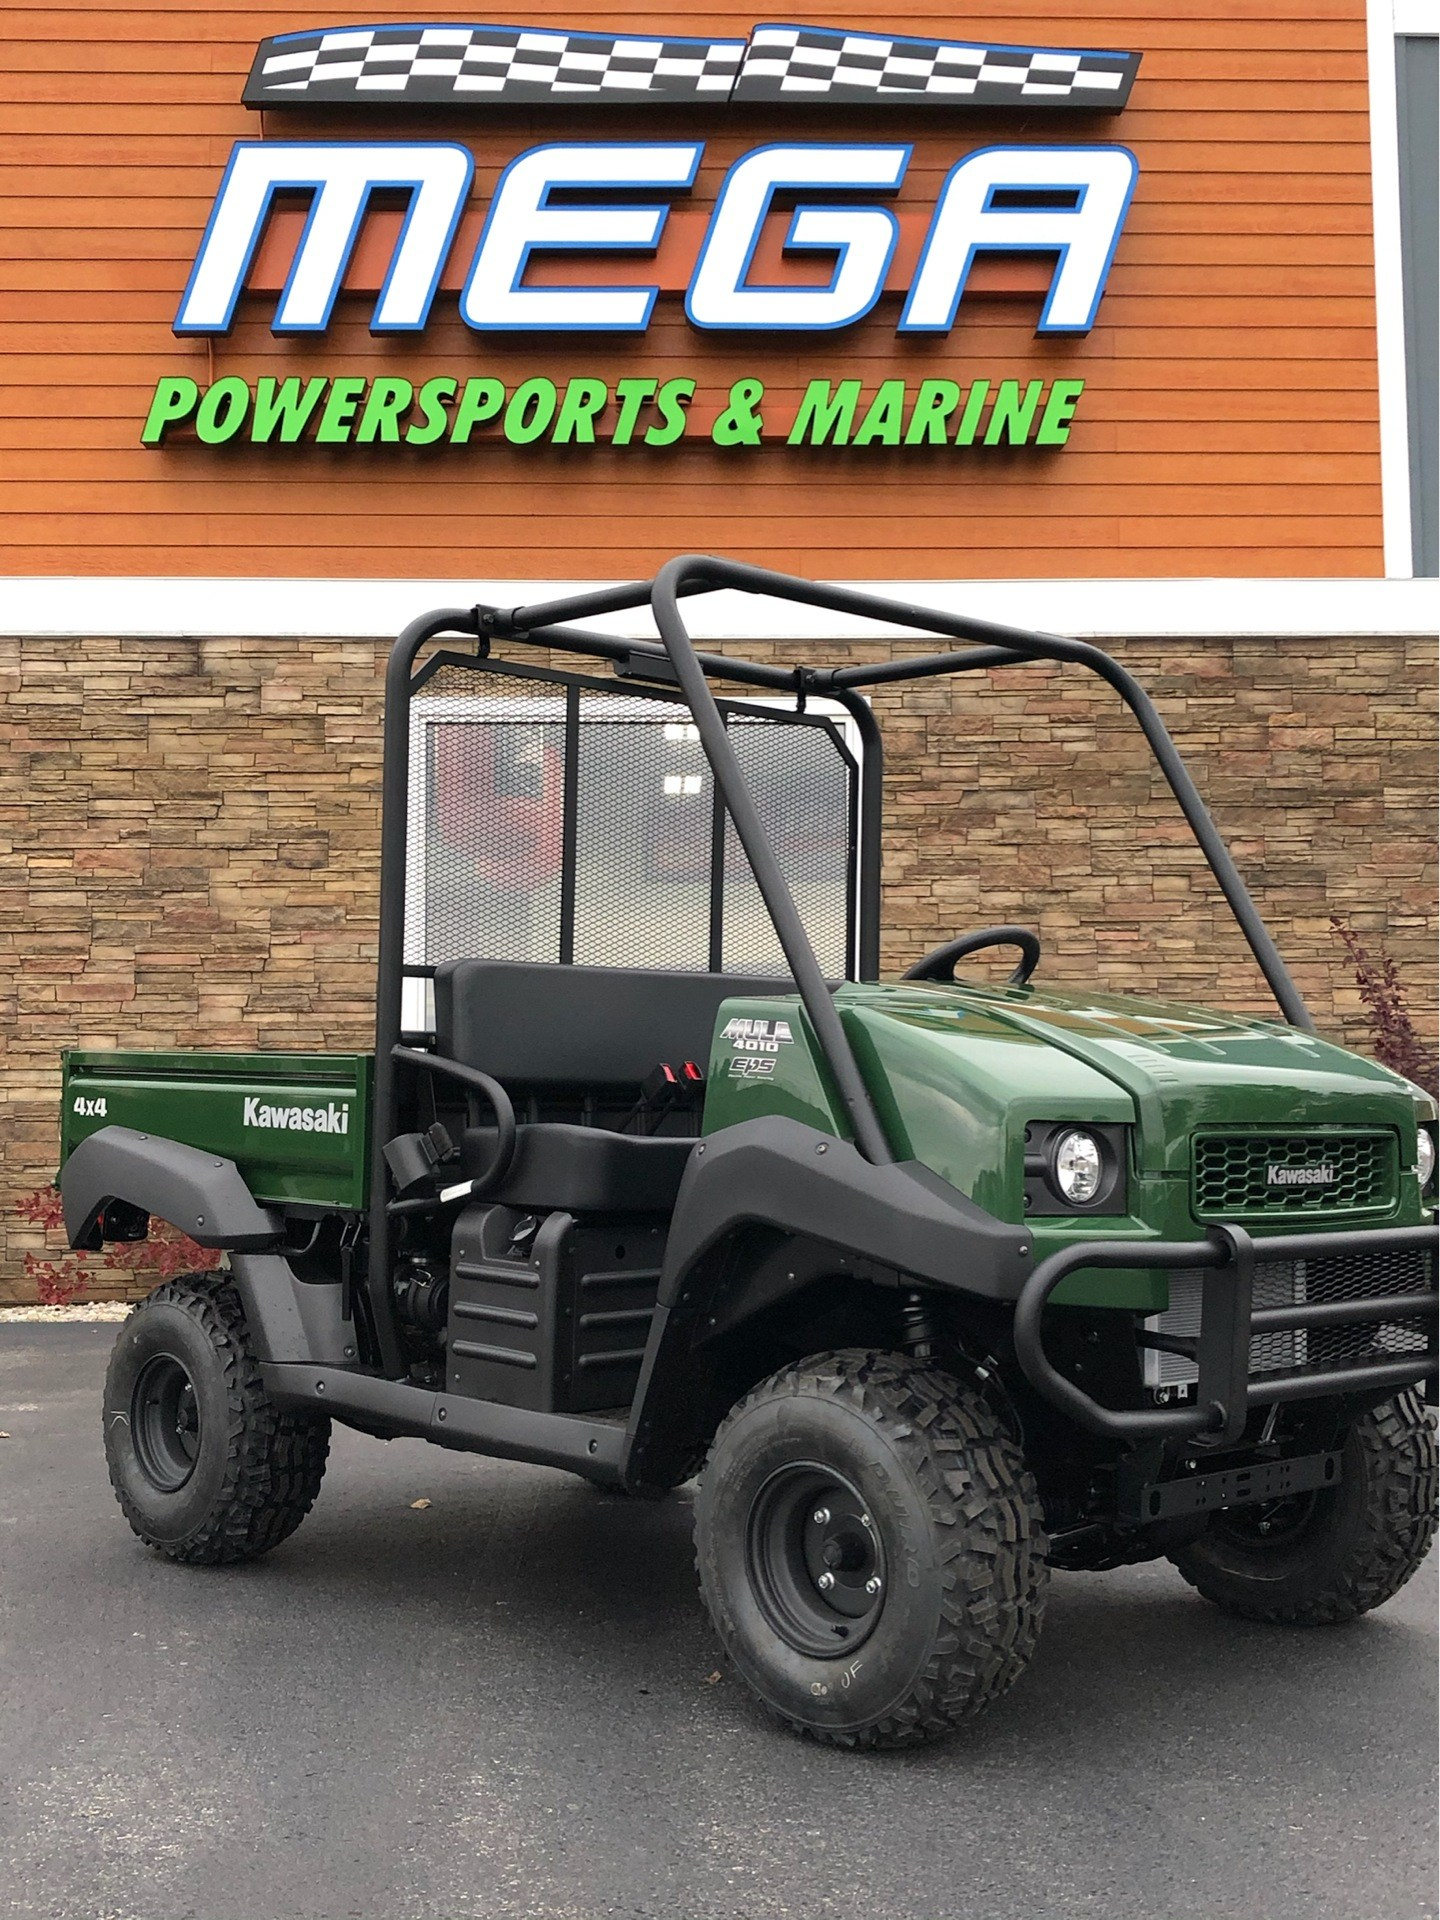 2020 Kawasaki Mule 4010 4x4 in Gaylord, Michigan - Photo 1